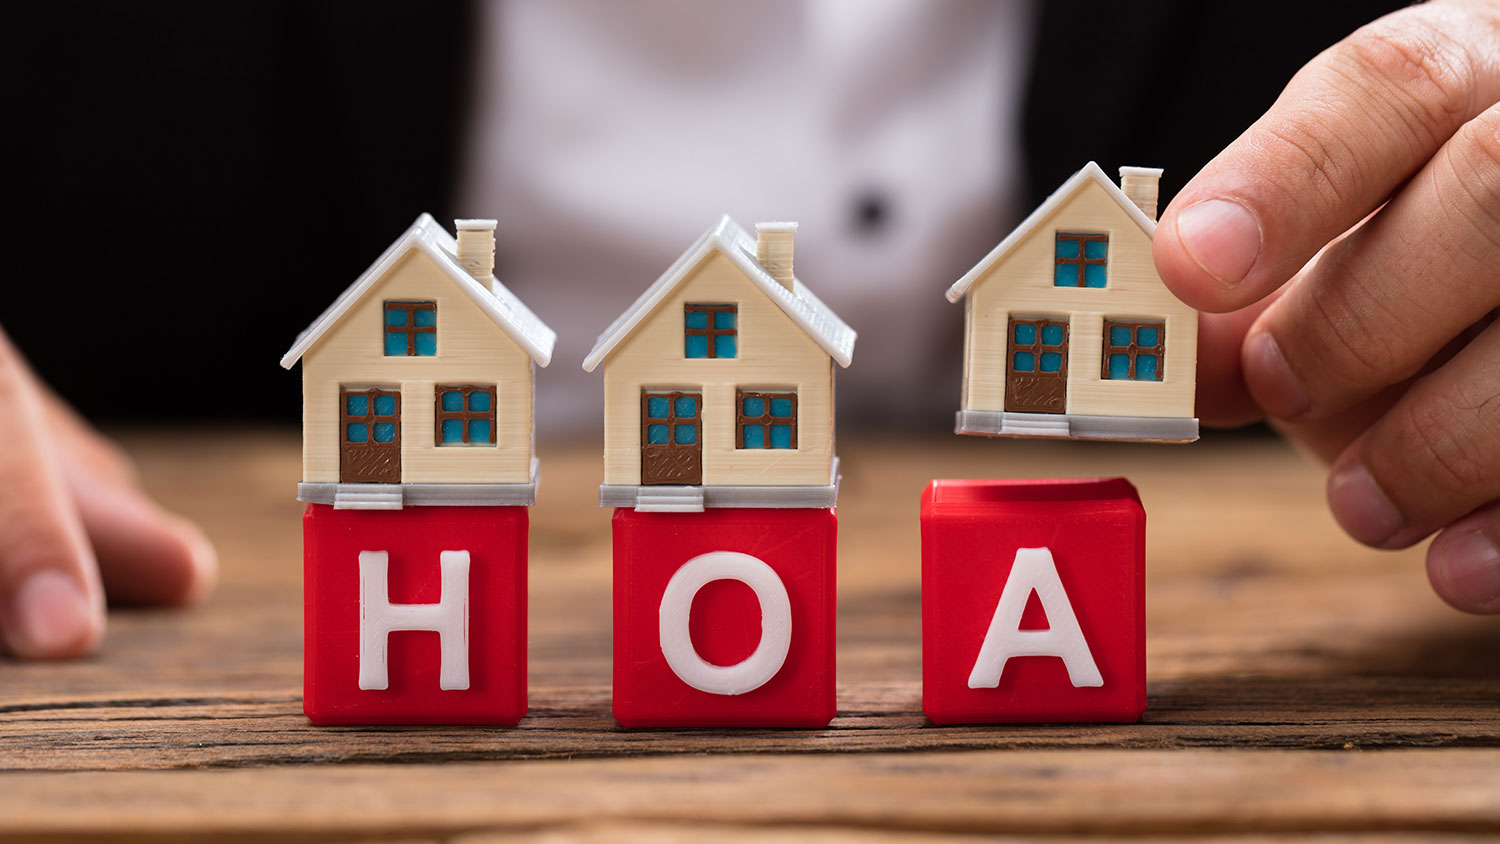 HOW TO DEAL WITH HOA'S WHEN BUYING INTO AN ESTATE